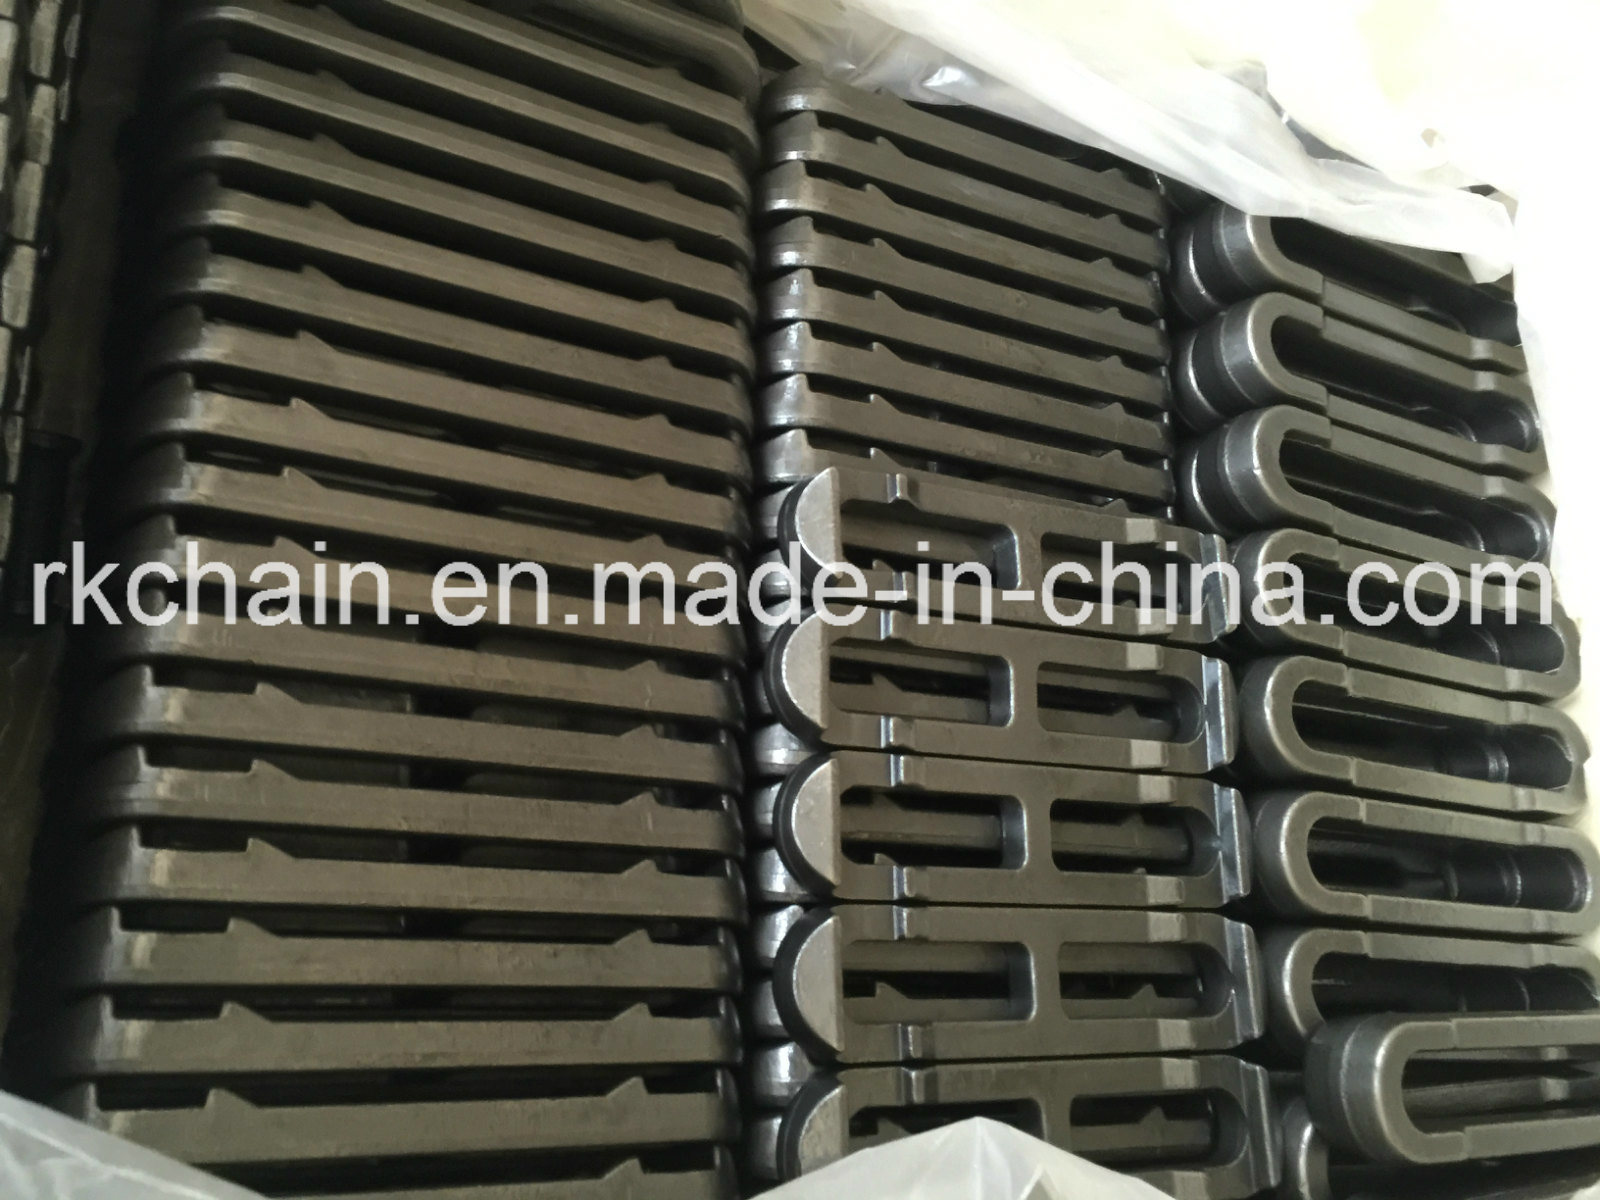 Forged Conveyor Chain (9118) for Conveyor System